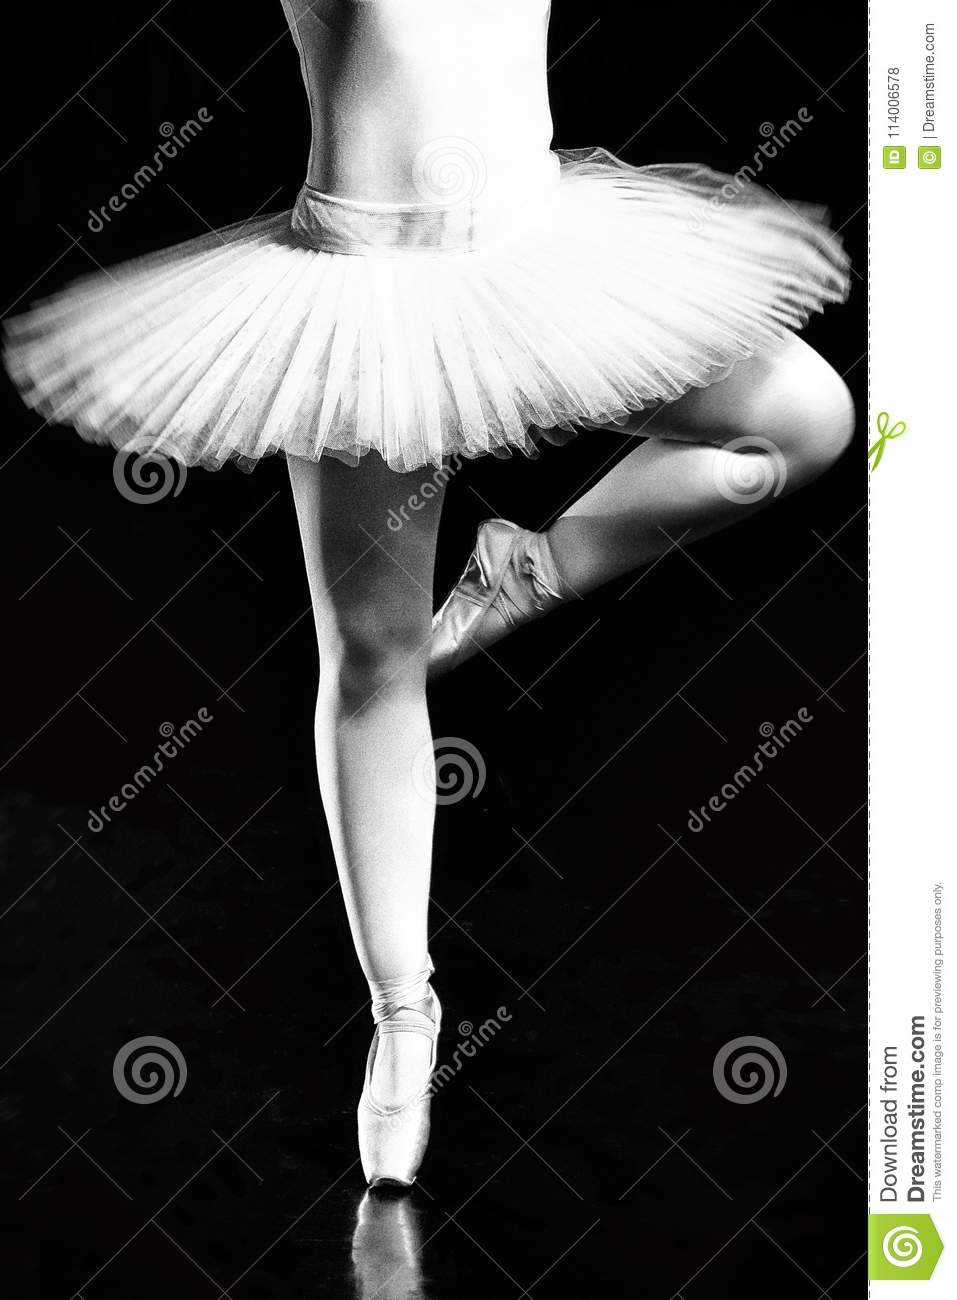 Legs of ballerina, Pointe shoes. ballet dancers, grace, flexibility, dancing.ballerina, pointe shoes,dances